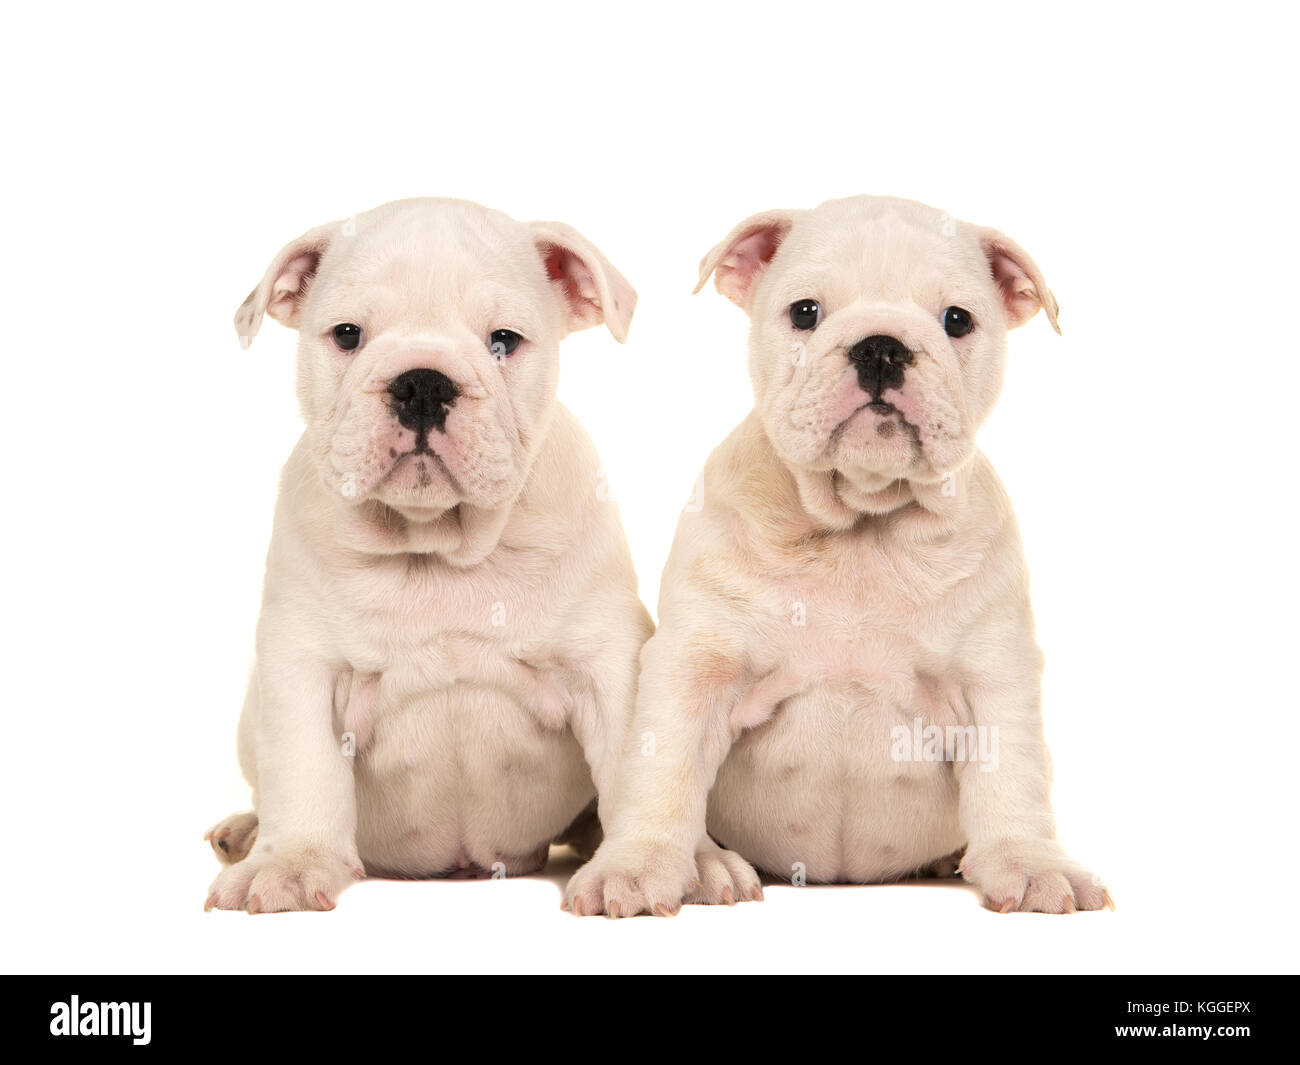 Two Cute White English Bulldog Puppy Dogs Sitting Together And Stock Photo Alamy